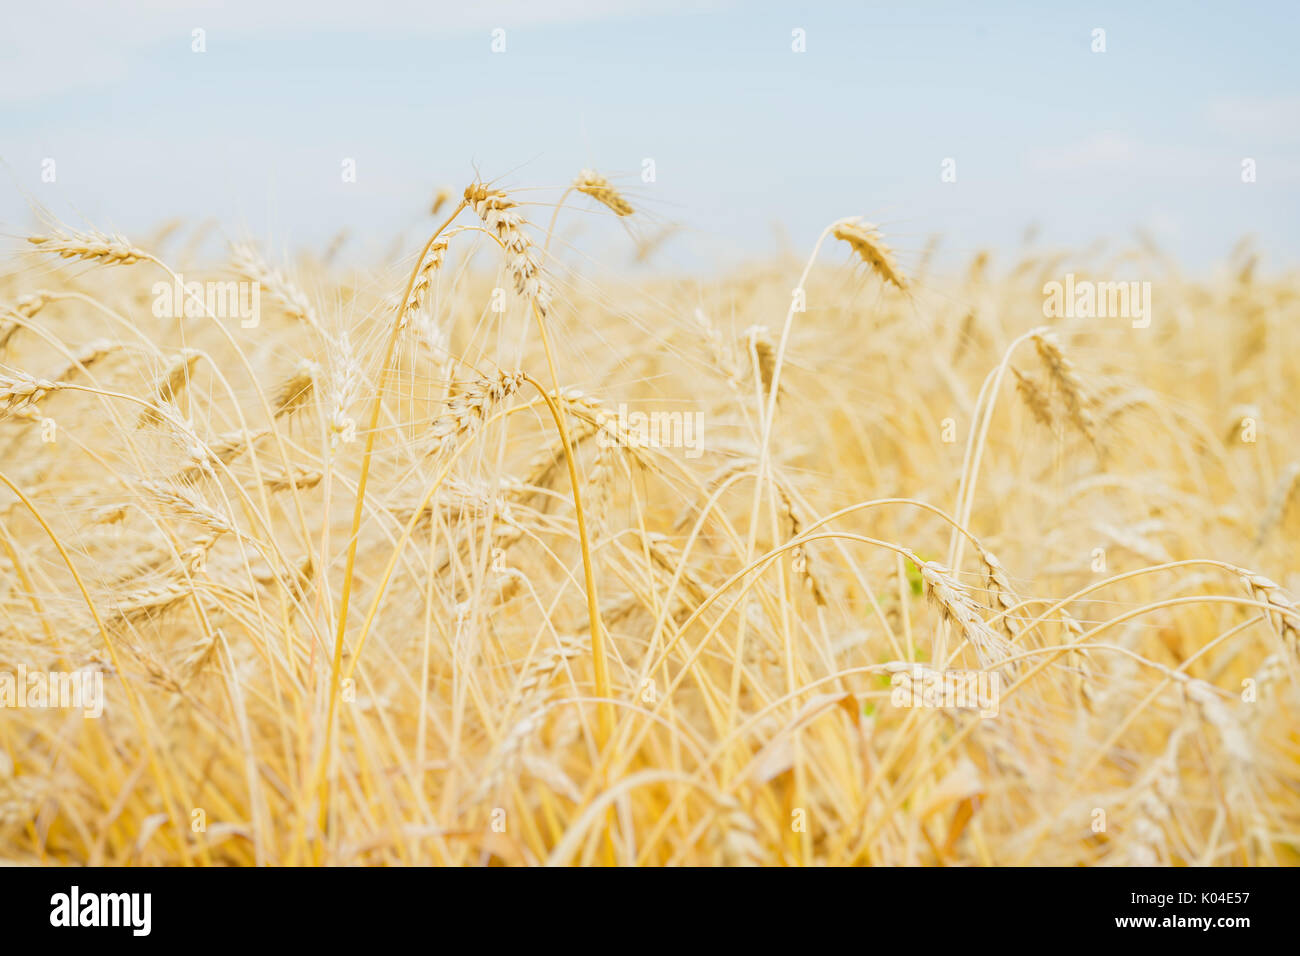 Cereal yellow ears in a hot, sultry summer afternoon against a cloudless light-blue sky. Rural background. - Stock Image